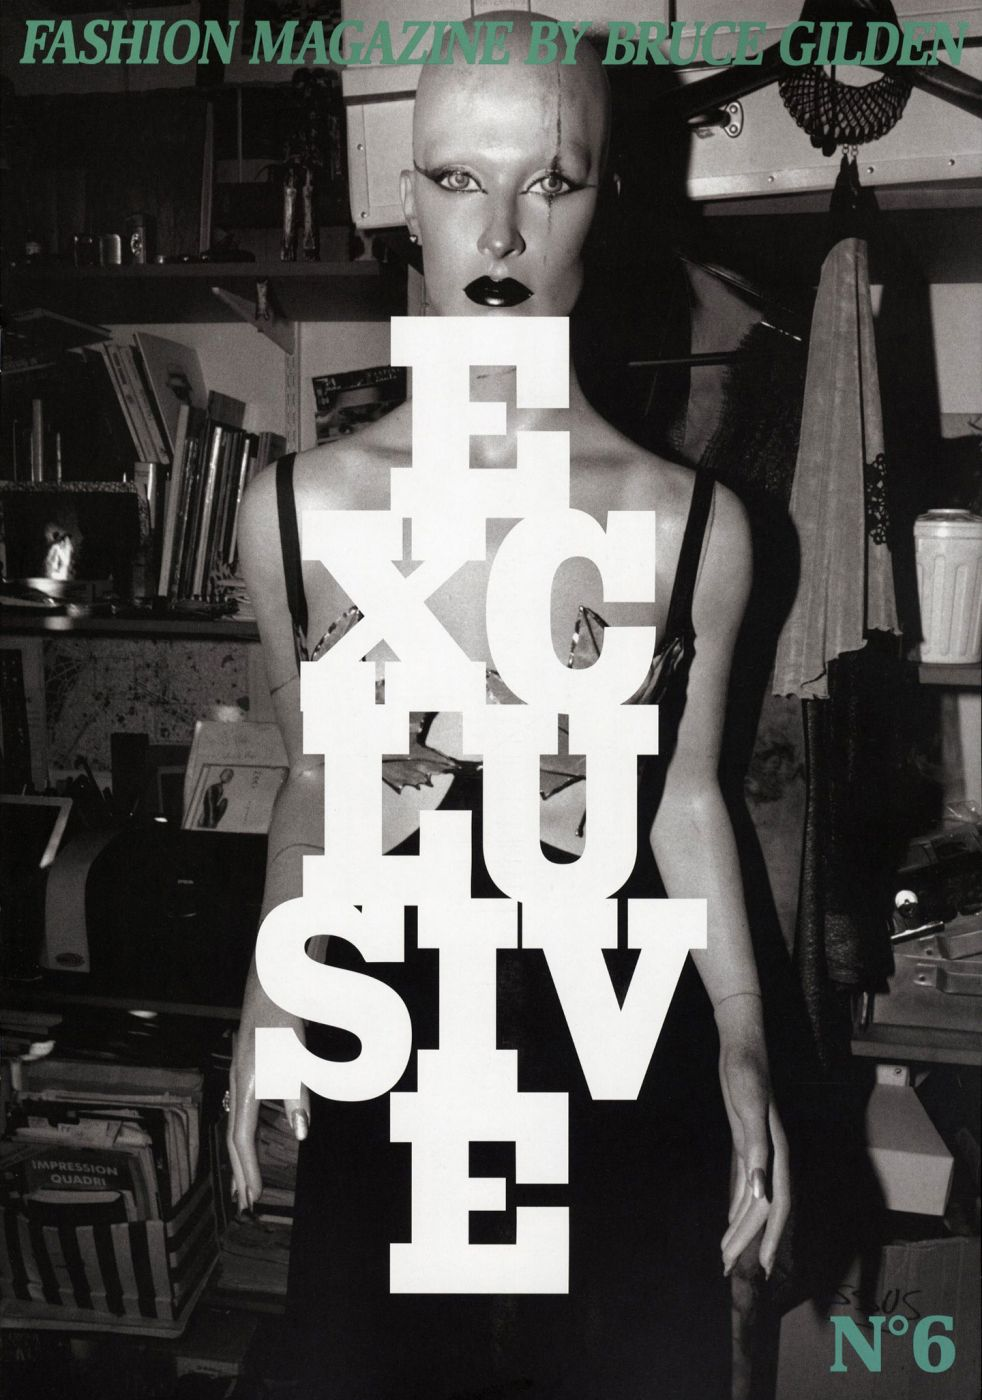 Bruce Gilden: Fashion Magazine (The Seven Deadly Sins of Fashion)